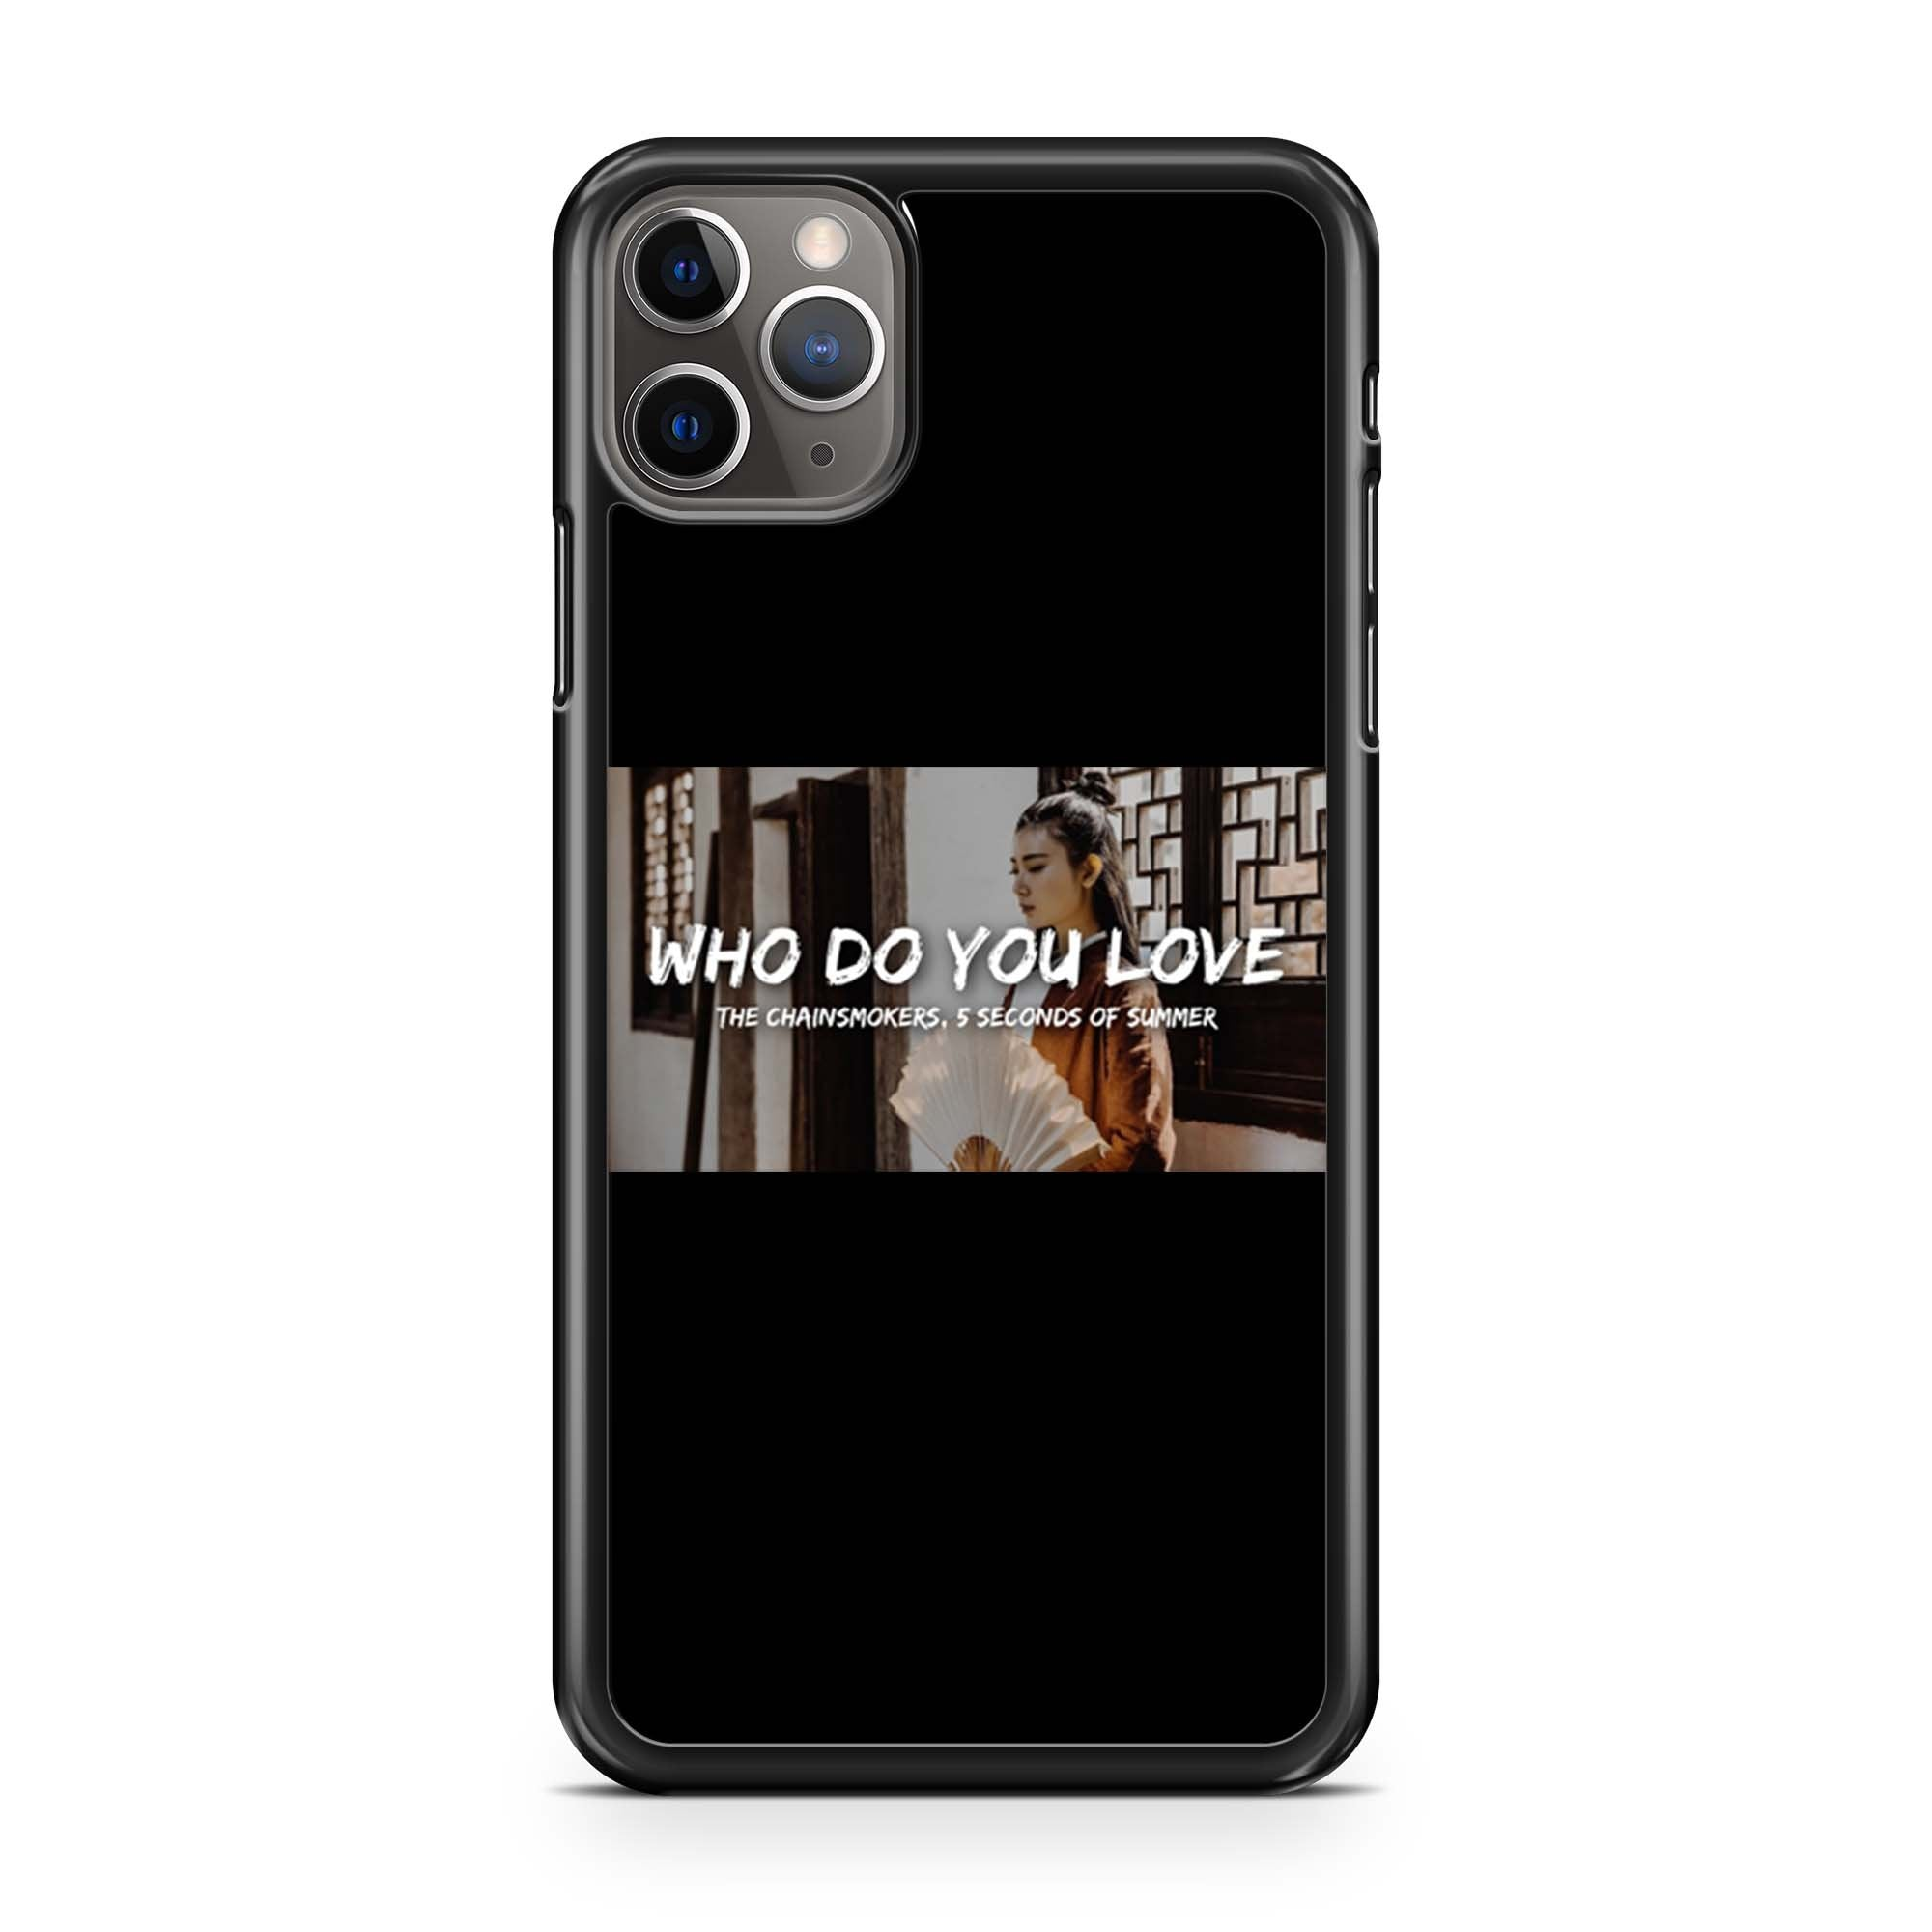 The Chainsmokers Who Do You Love Poster iPhone 11 Pro Max Case